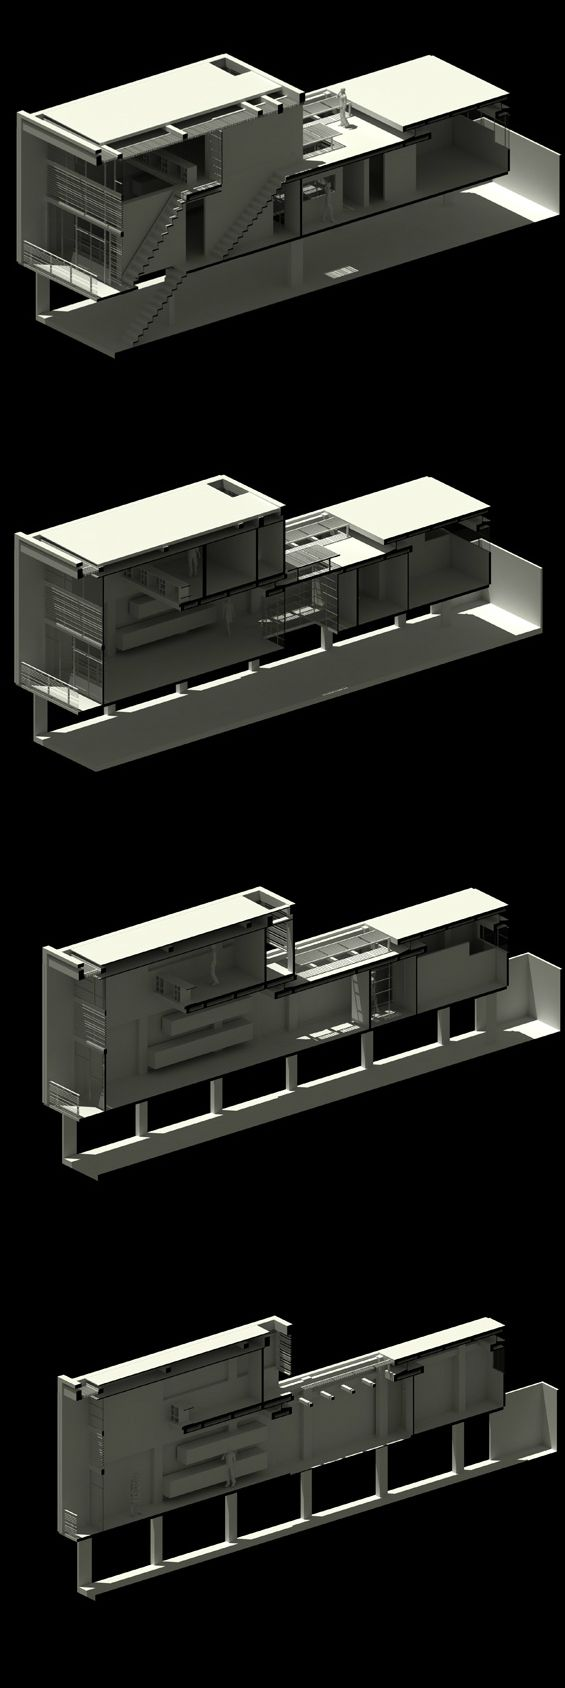 Architecture Design Models 120 best architectural + conceptual models images on pinterest